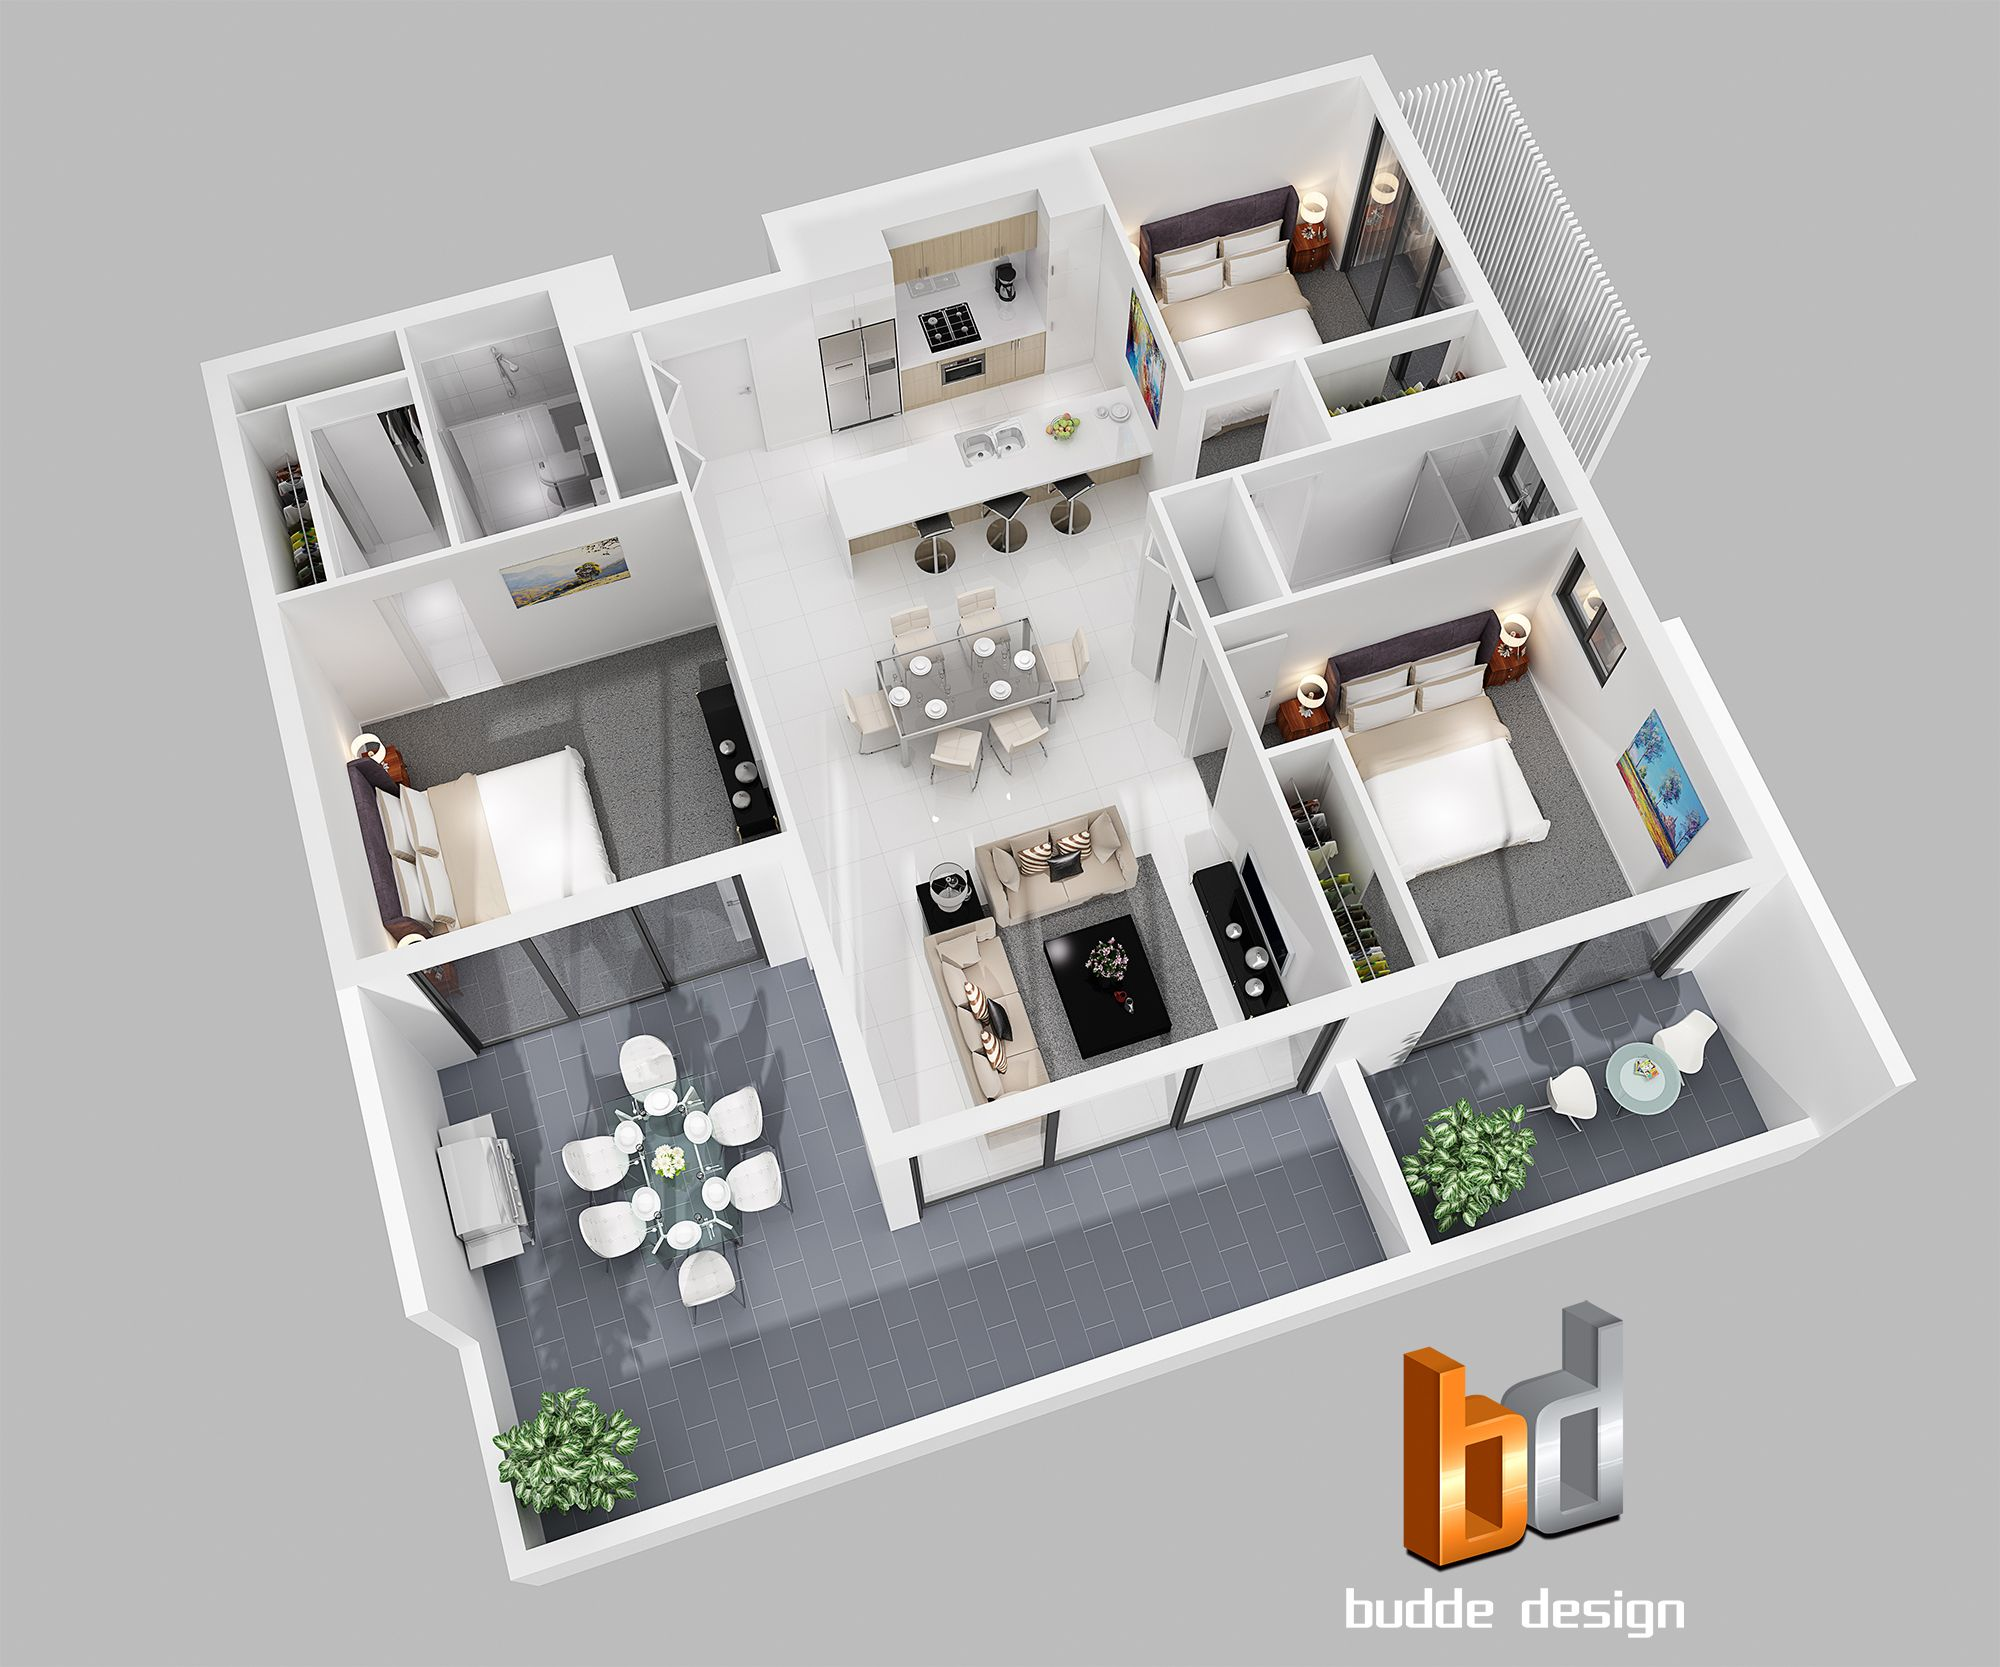 3D floor plan for an apartment development Chermside Brisbane